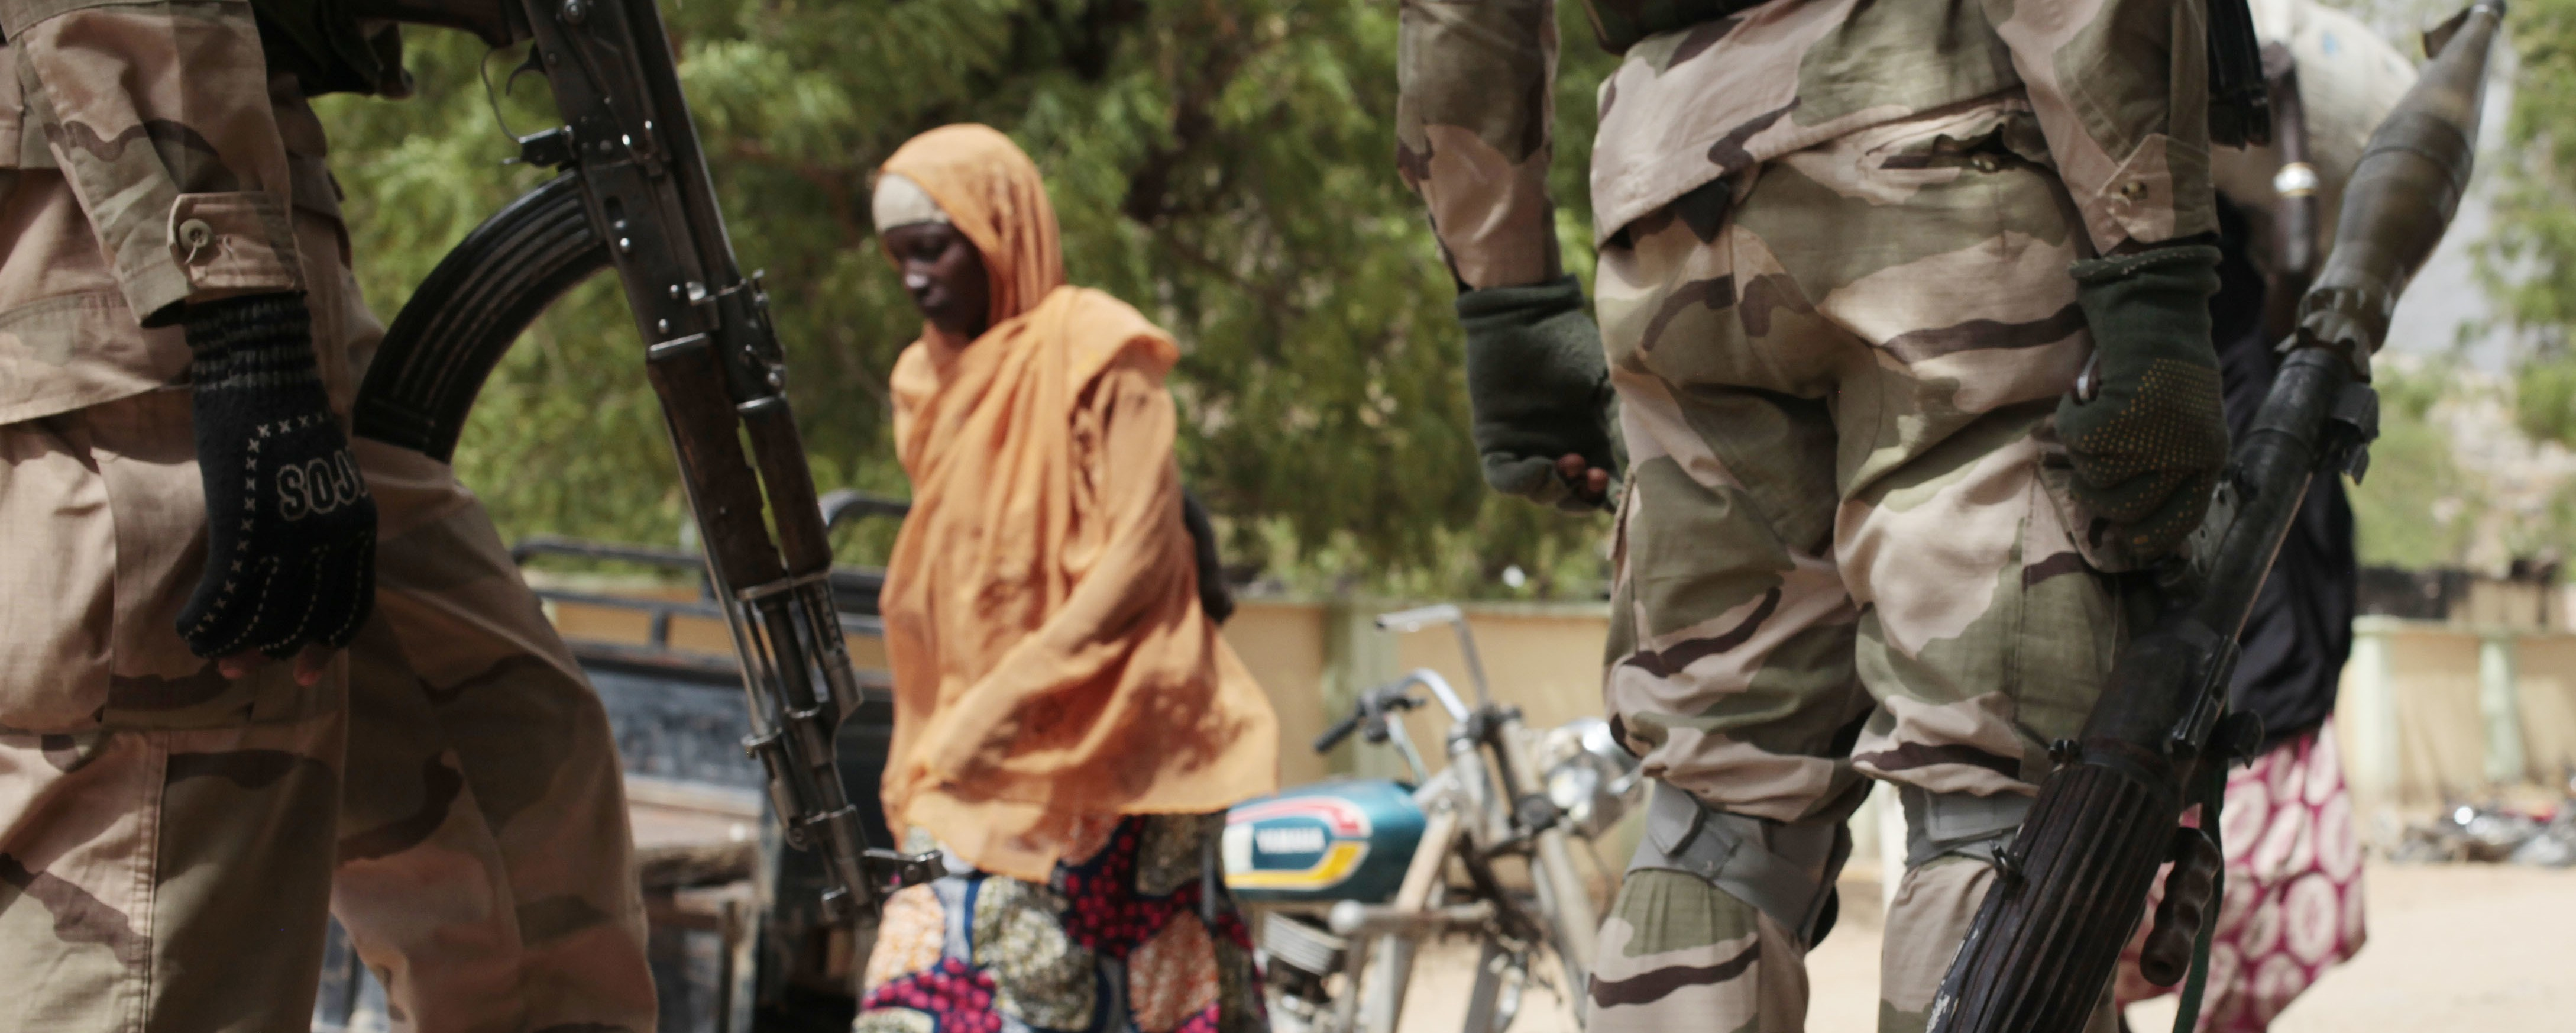 Boko Haram Said to Recapture Nigerian Border Town as Islamic State Offers Praise